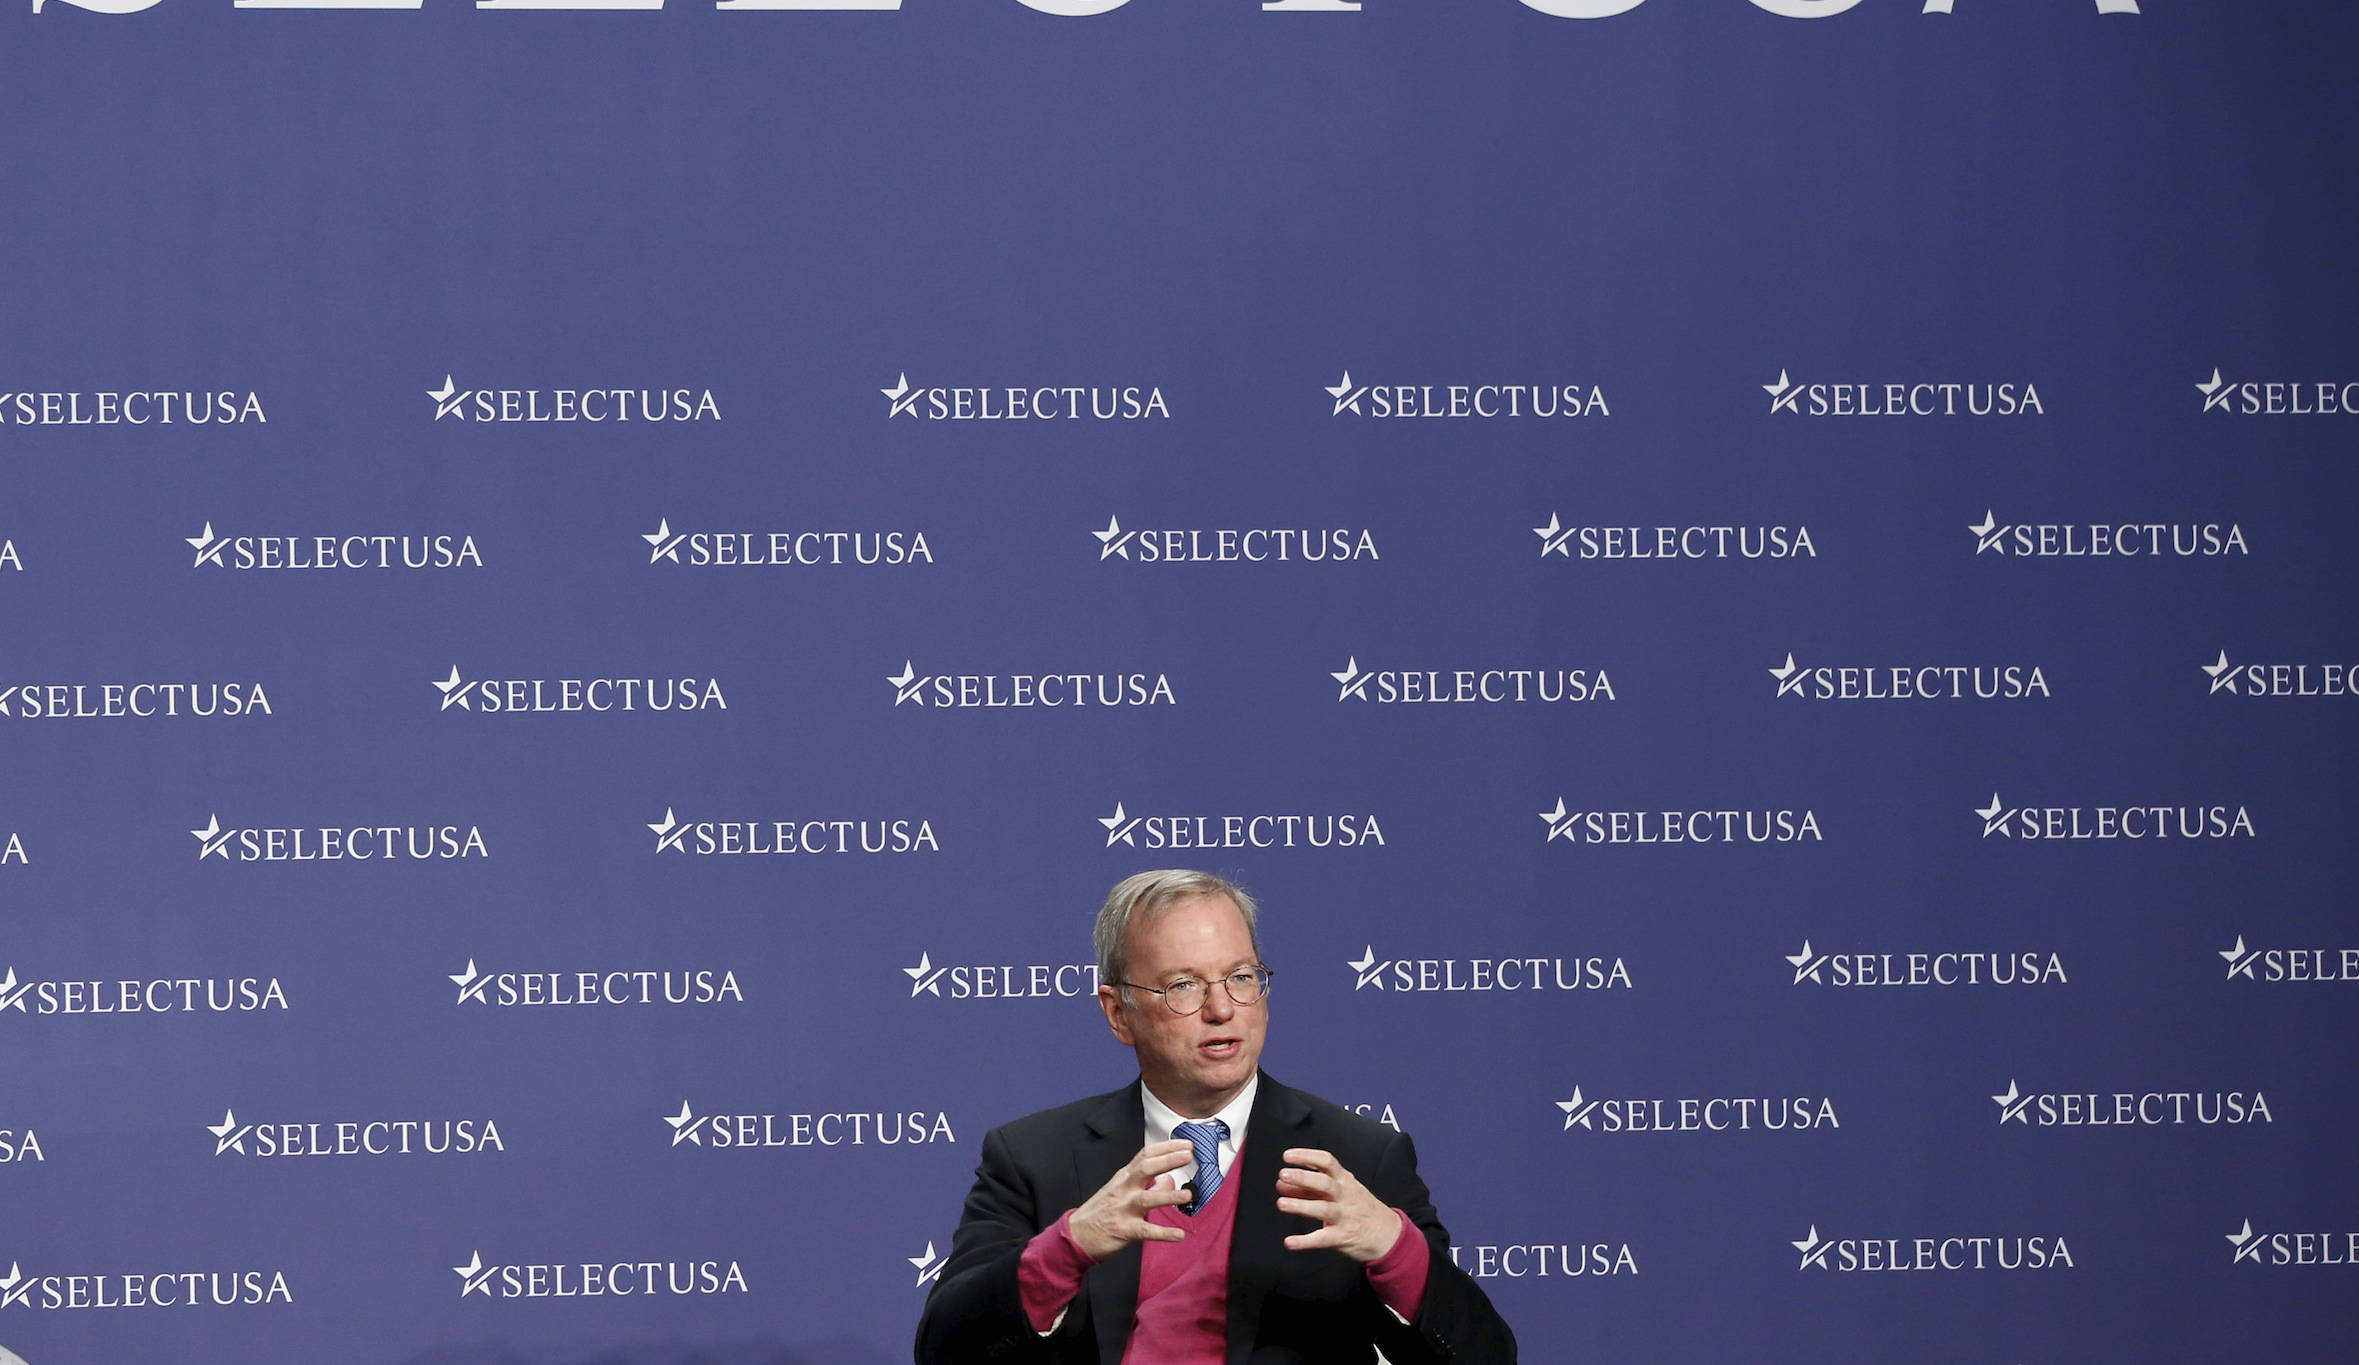 """Google Executive Chairman Eric Schmidt speaks during a Plenary session on """"Training Your Skilled Workforce"""" at the SelectUSA Investment Summit at National Harbor, Maryland March 24, 2015. REUTERS/Yuri Gripas - RTR4UOVS"""